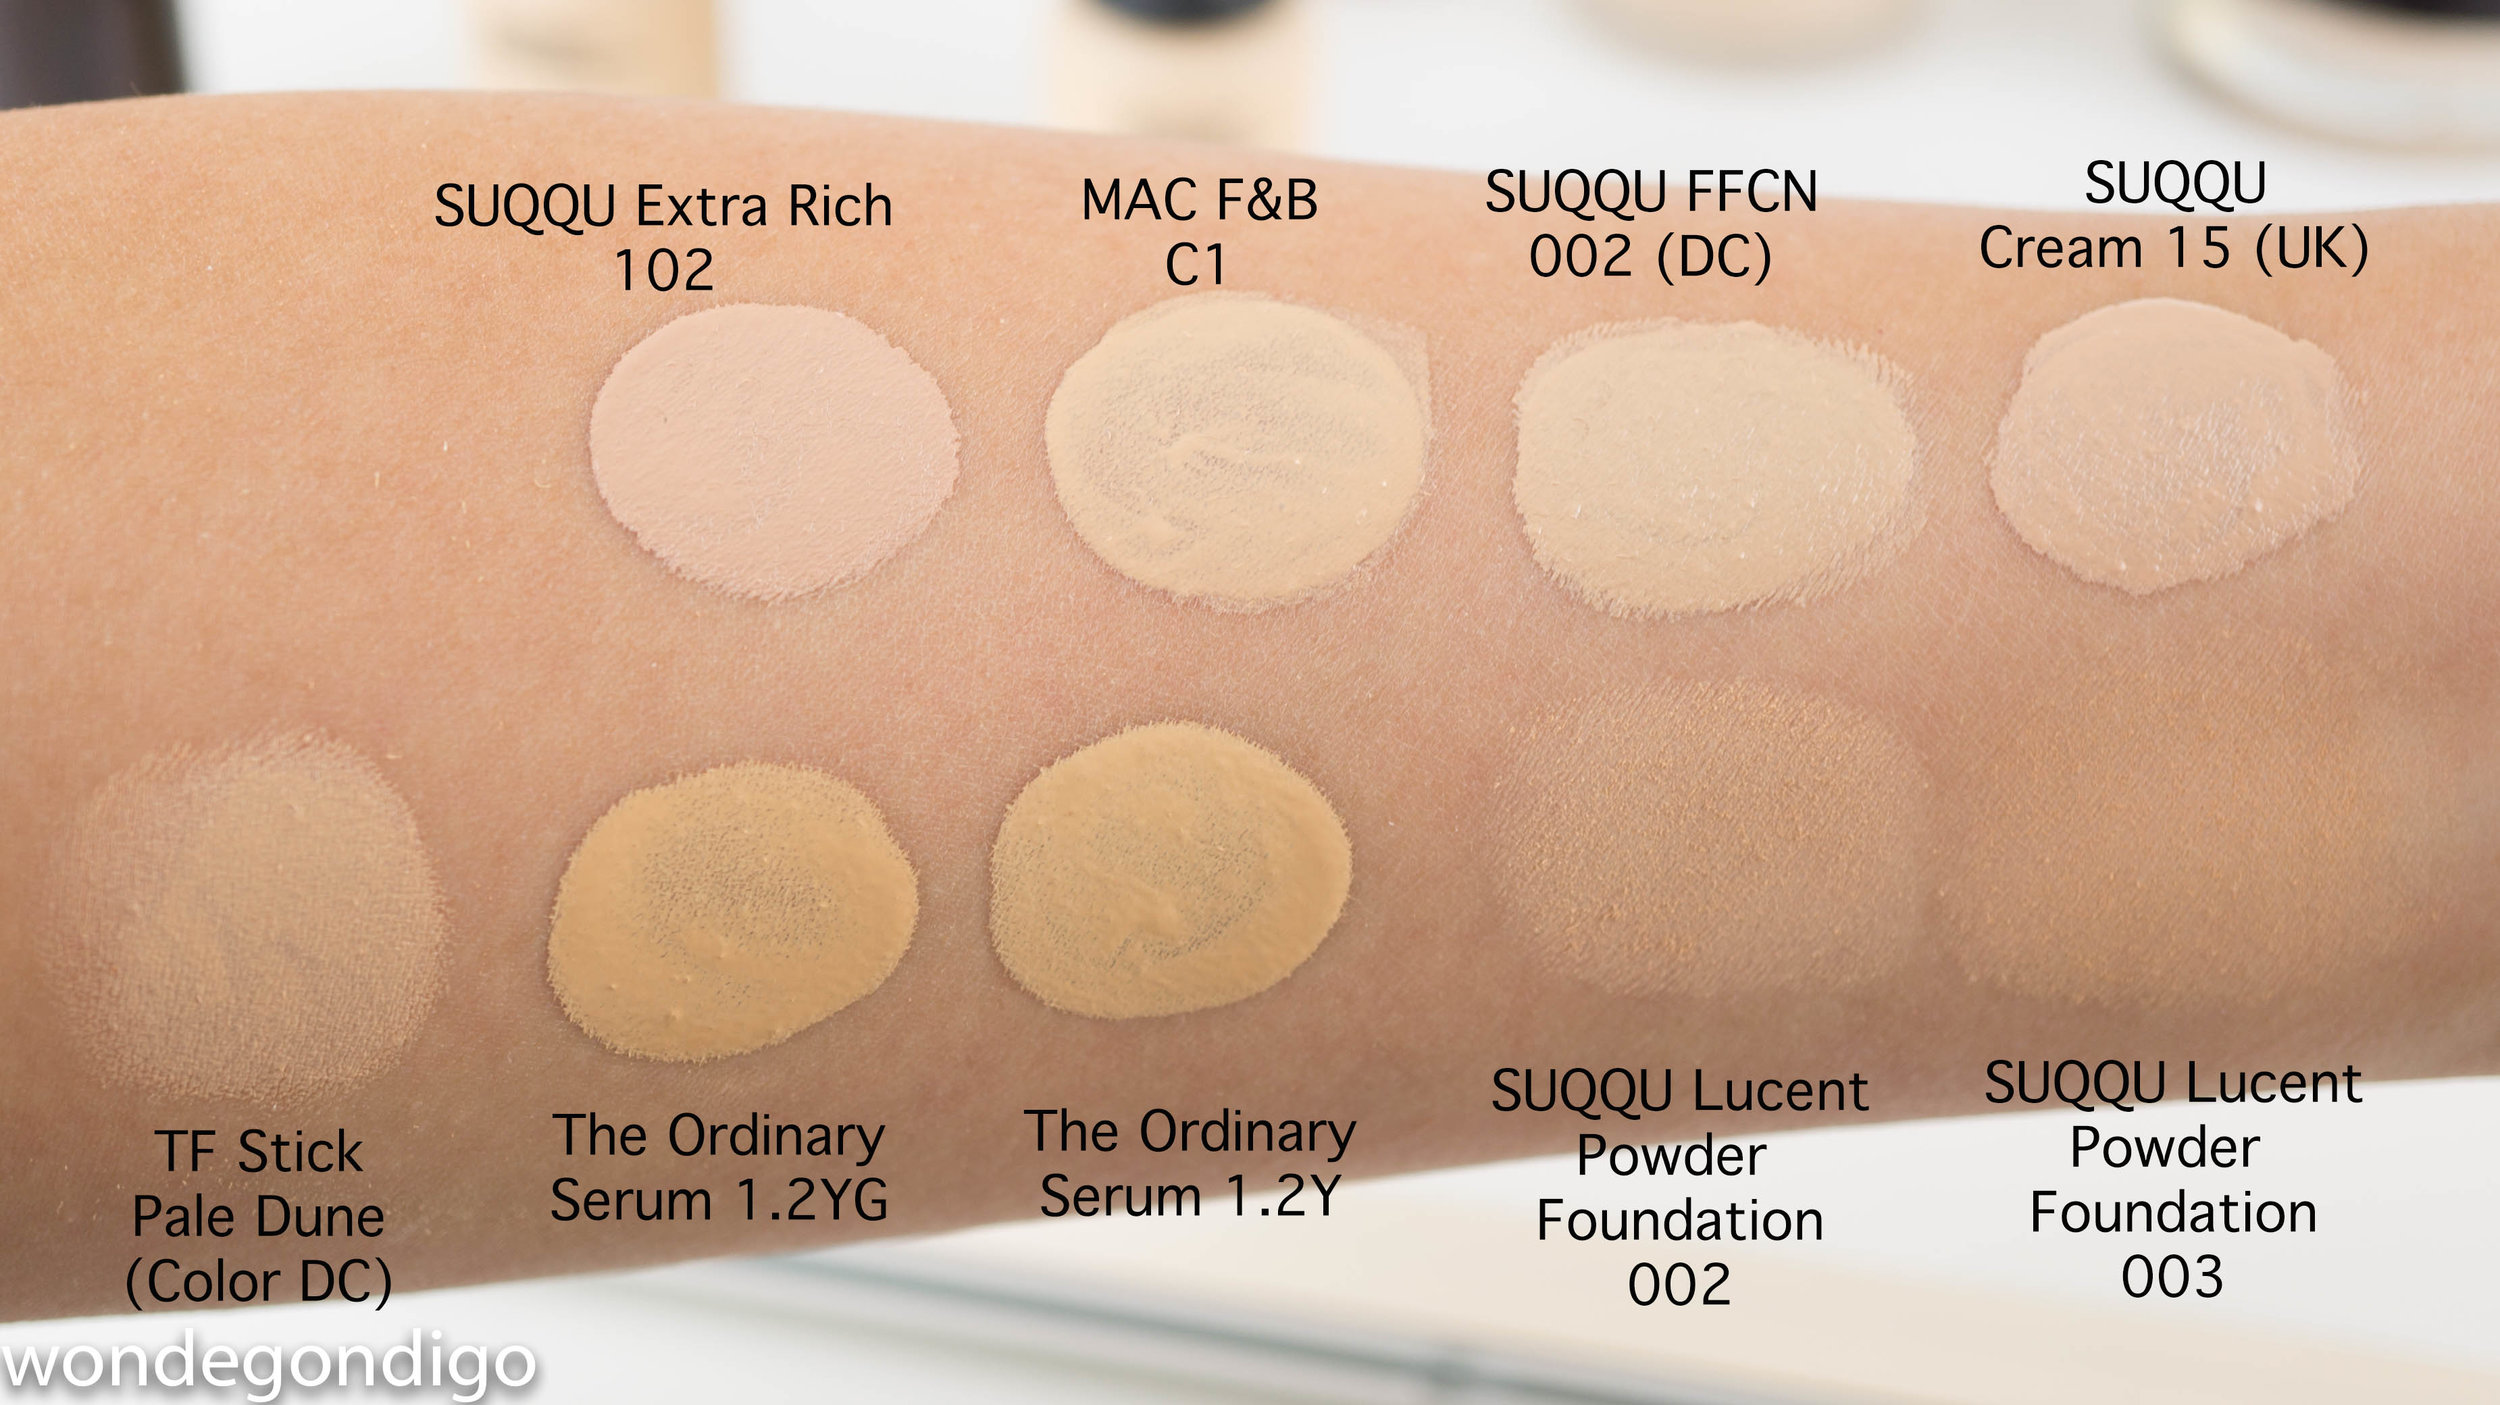 Some foundation shade comparisons